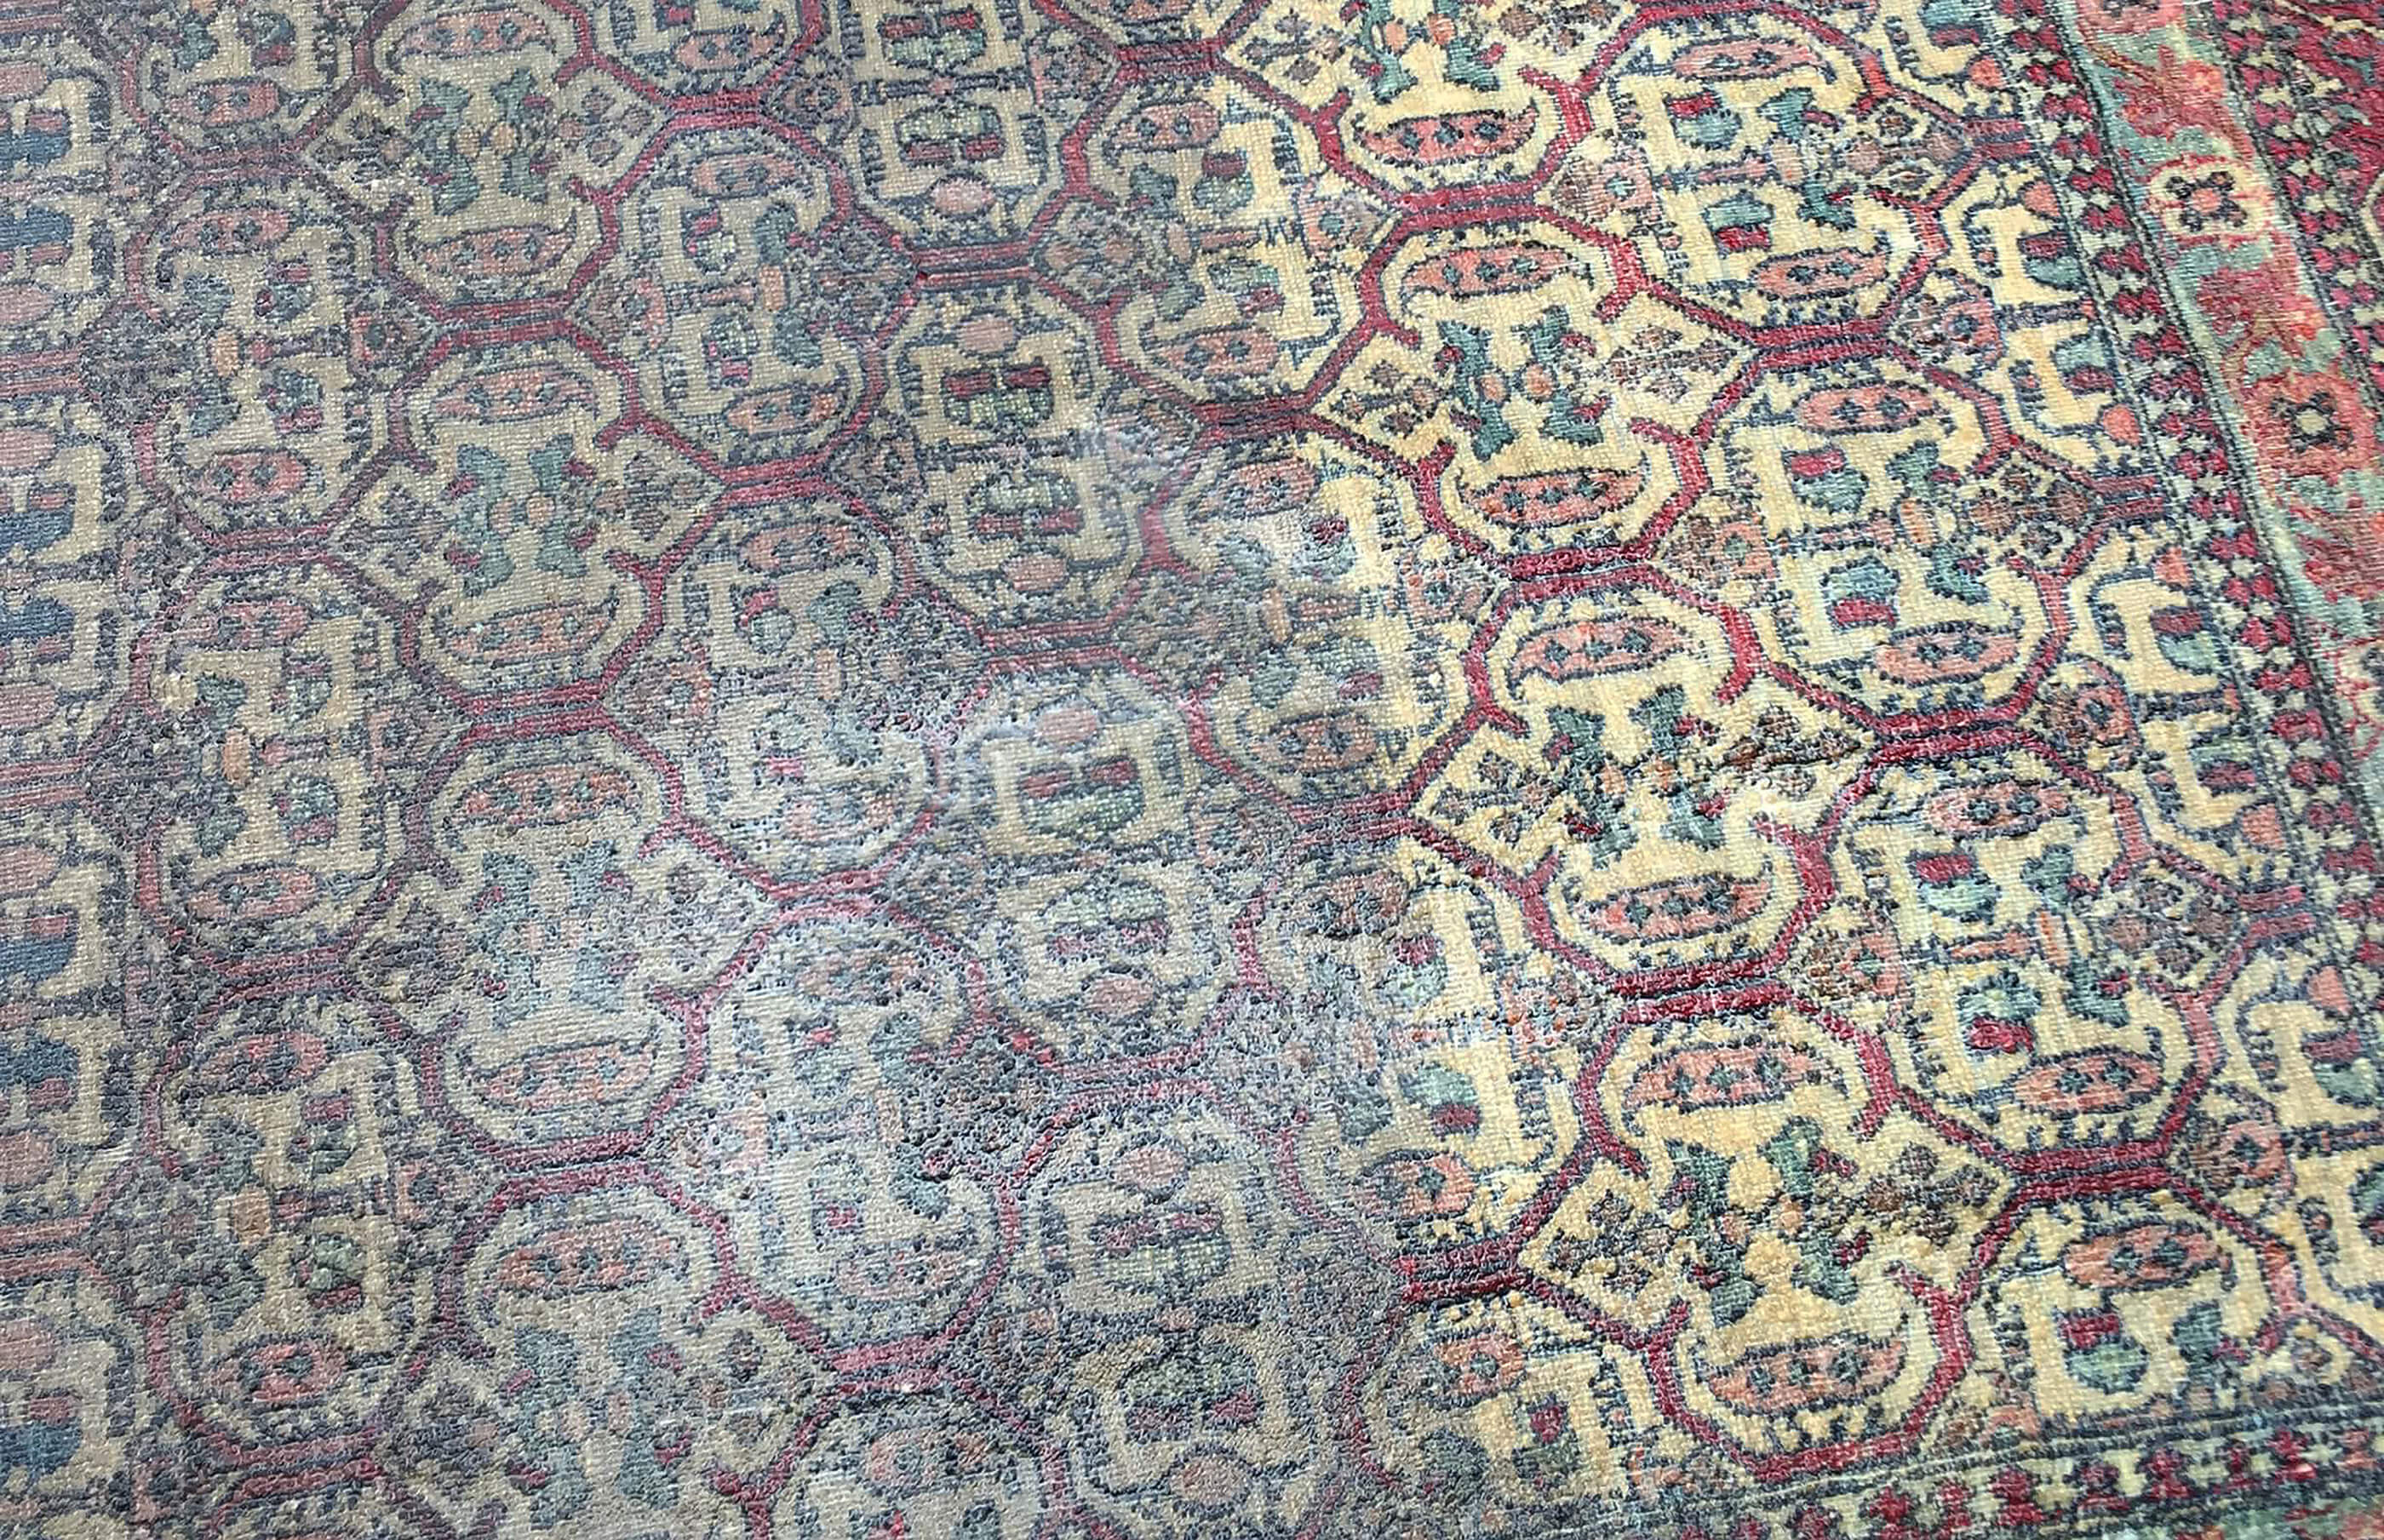 specialist rug cleaning in London